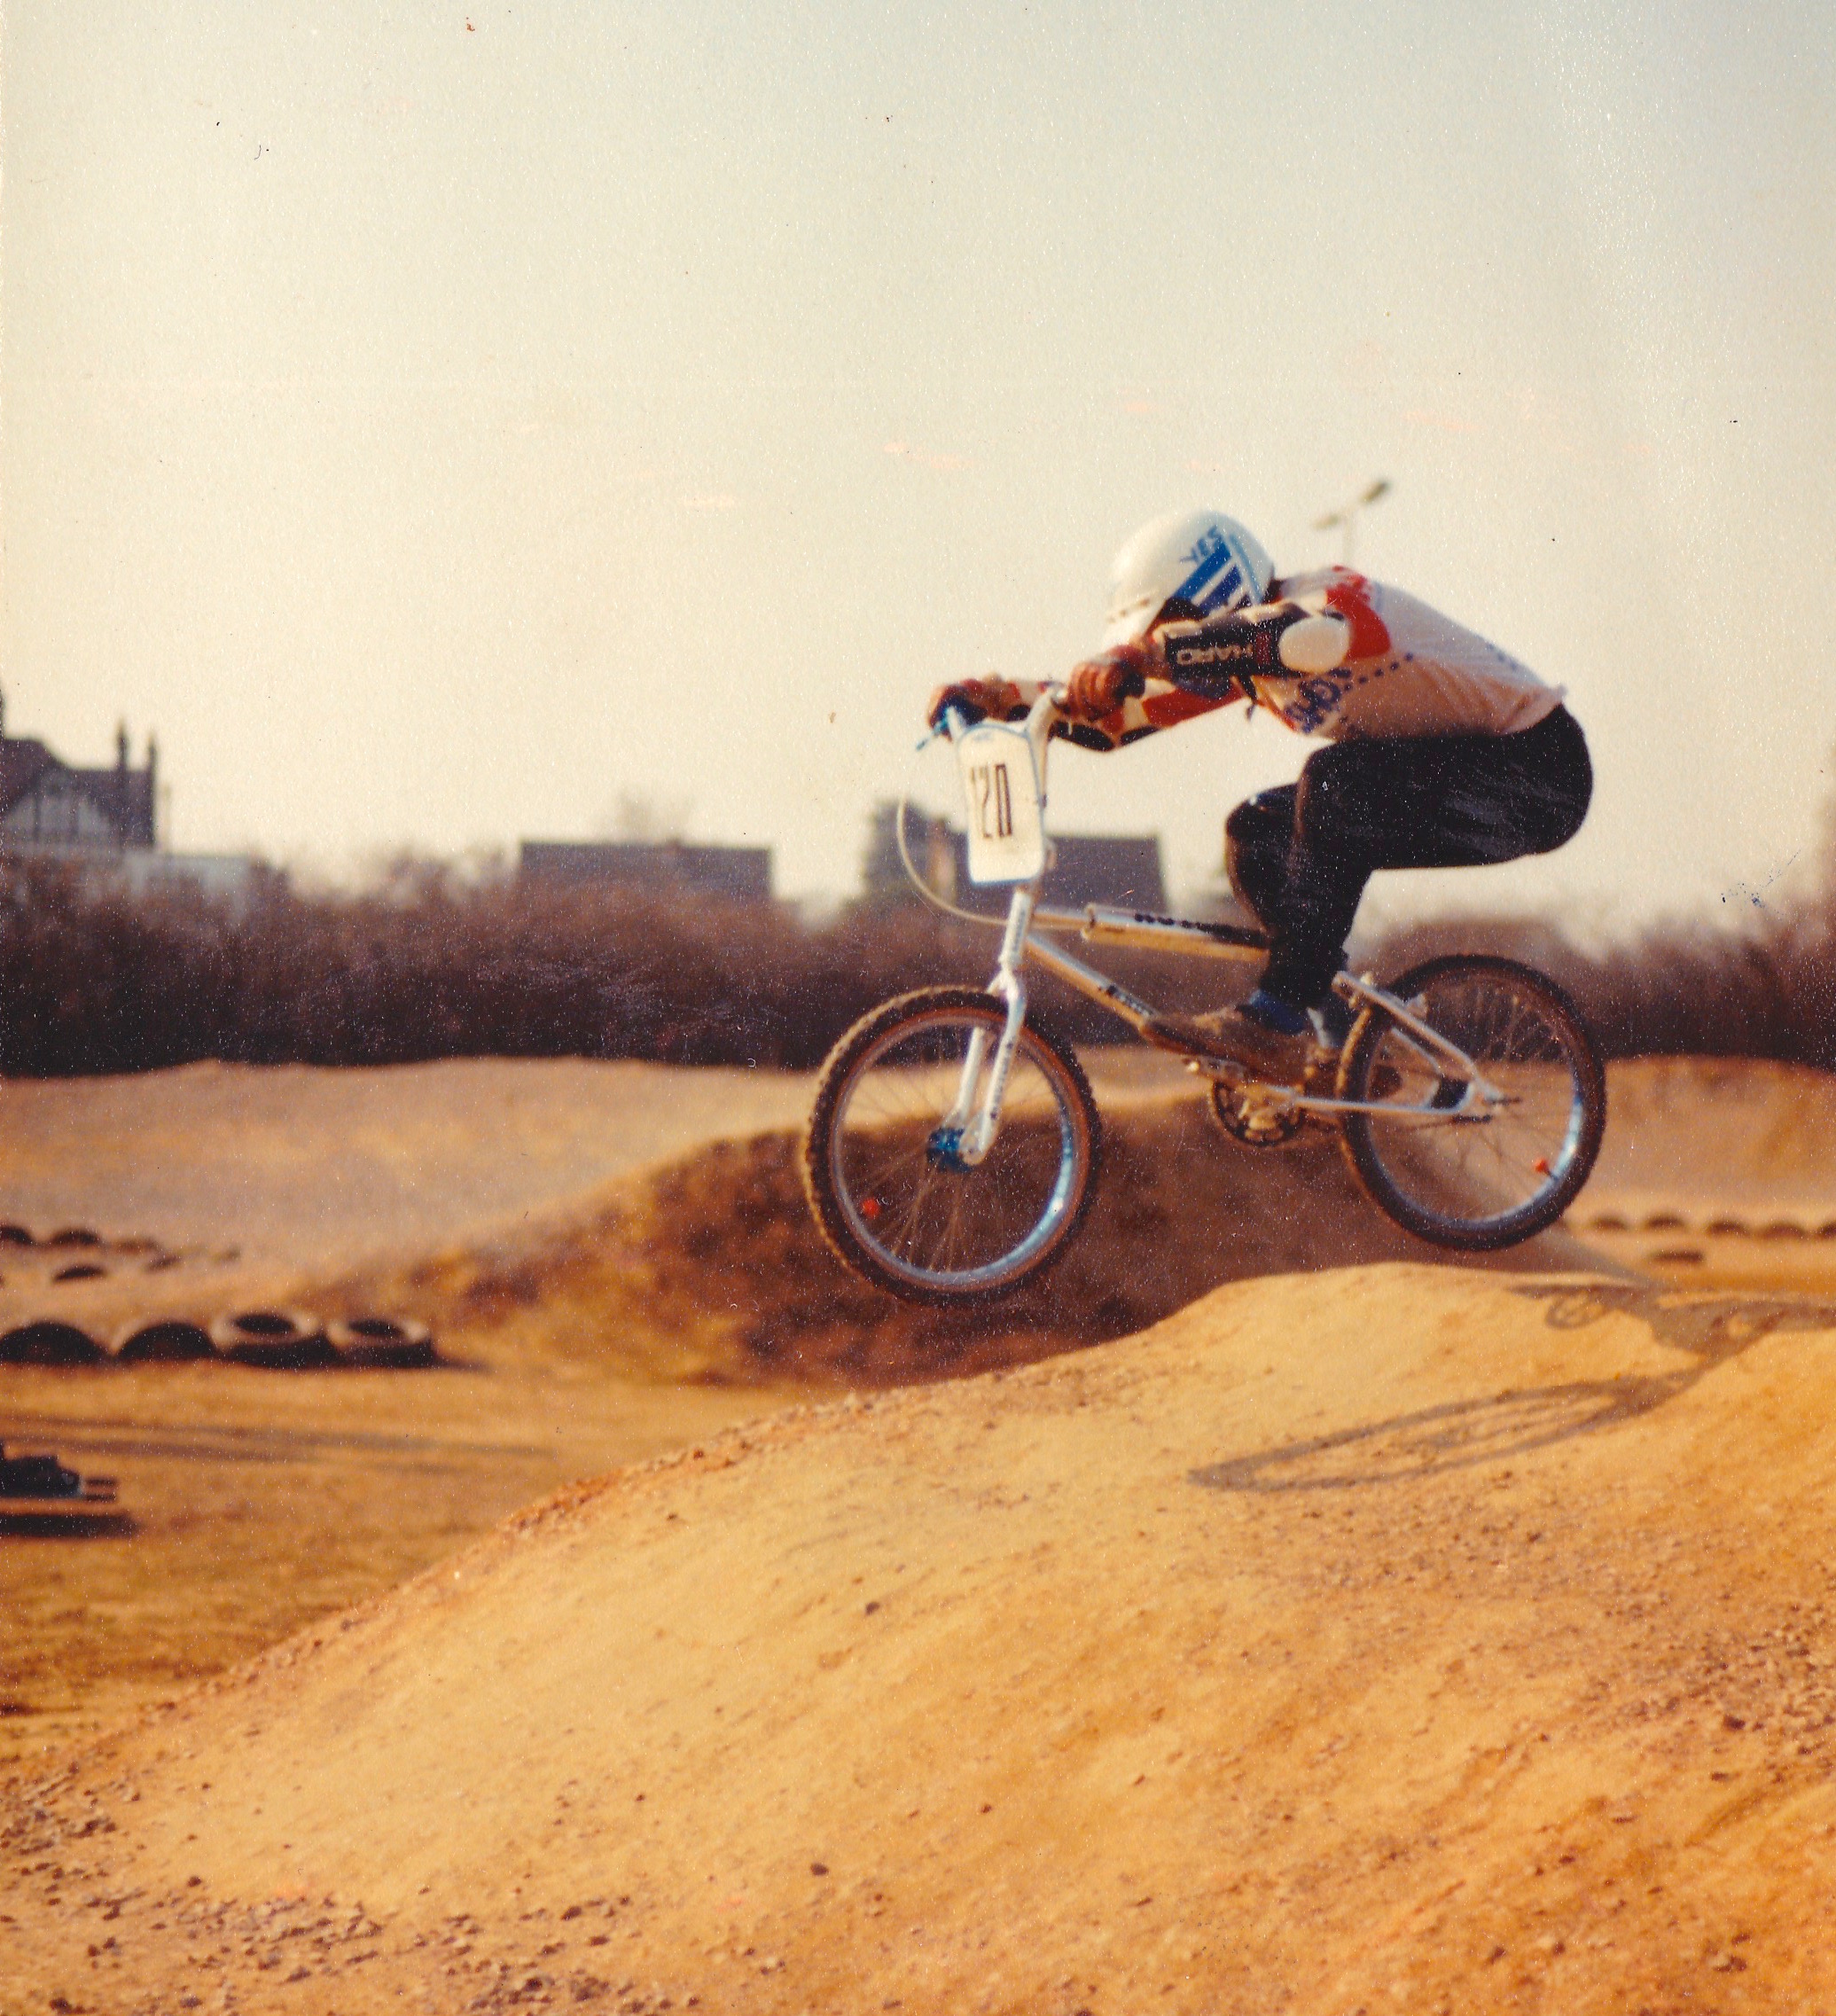 Chris Carter competing at Slough's first ever race in 1984.